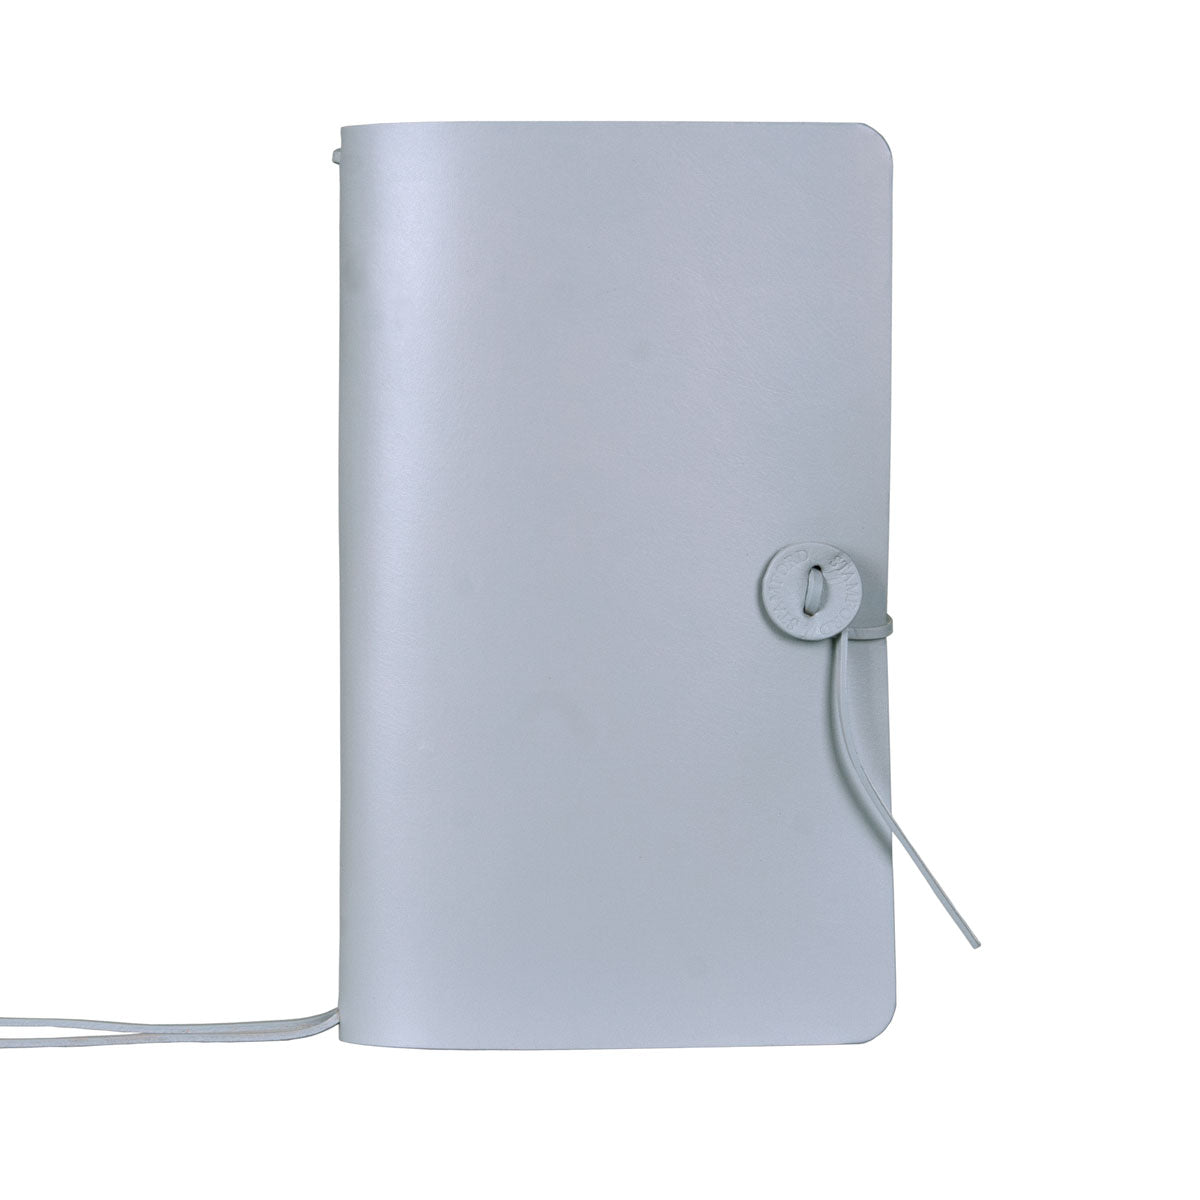 Mid Grey refillable leather travellers Journal